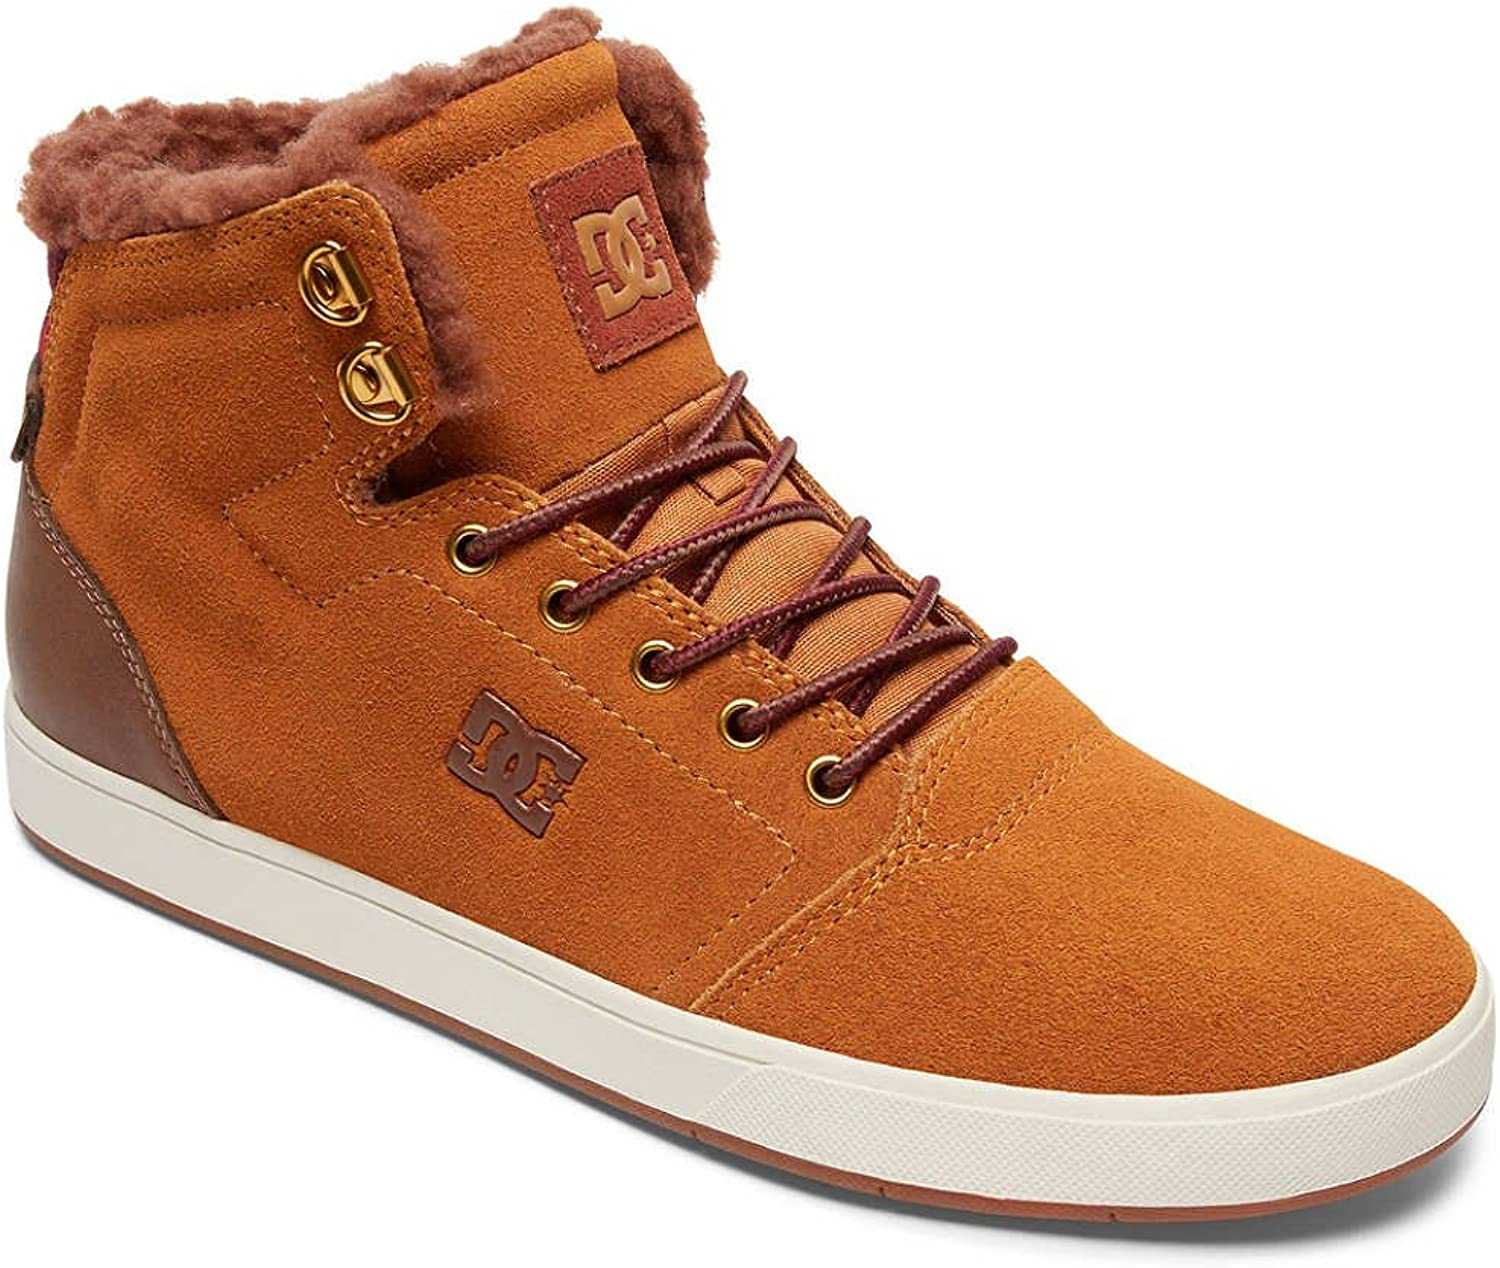 DC shoes Crisis Trainers in Wheat